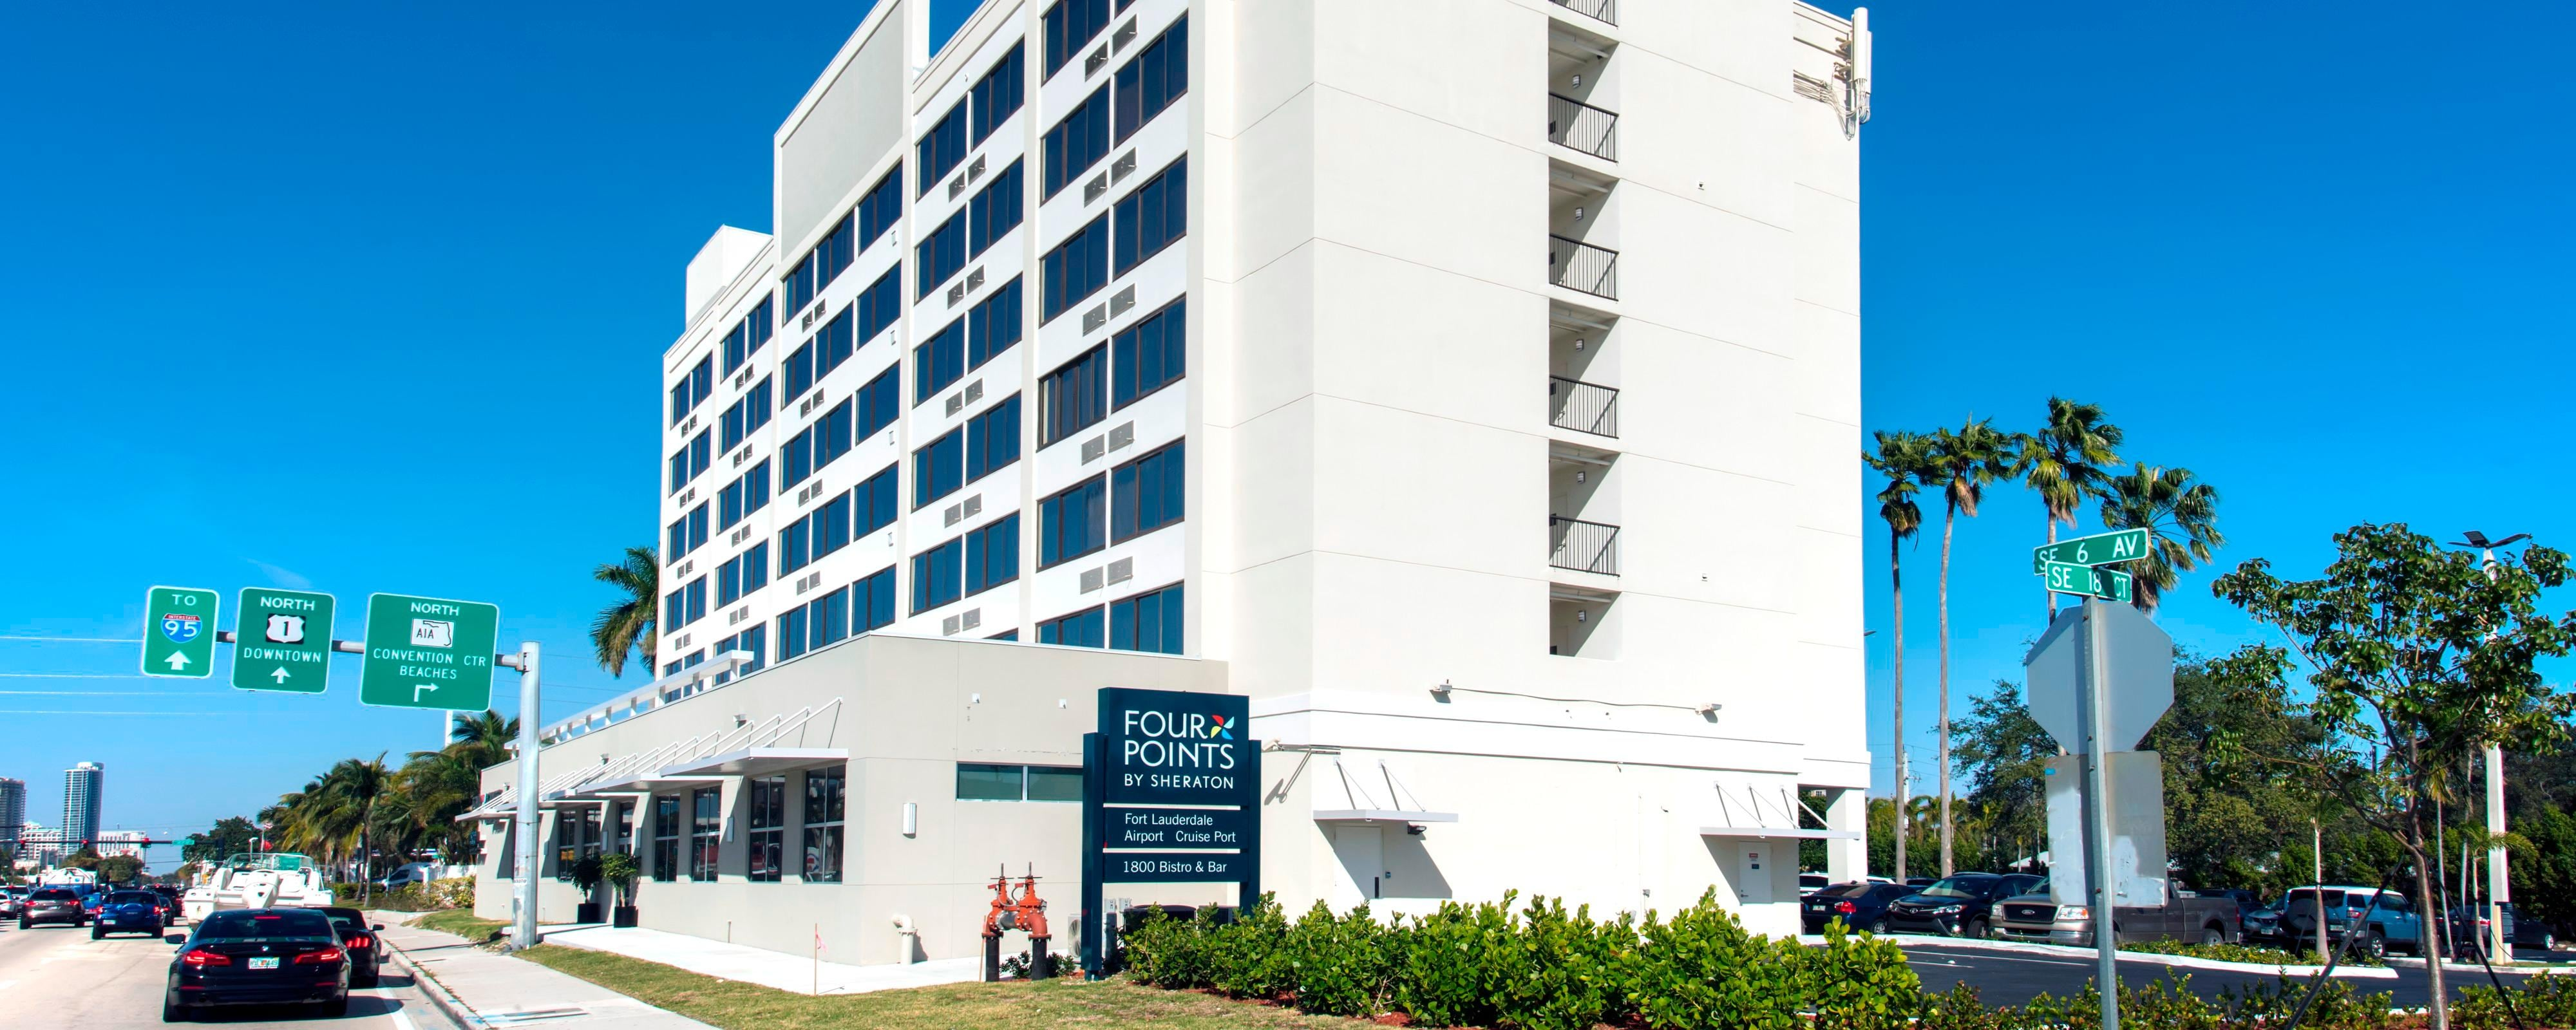 Business Leisure Hotel In Fort Lauderdale Four Points By Sheraton Airport Cruise Port